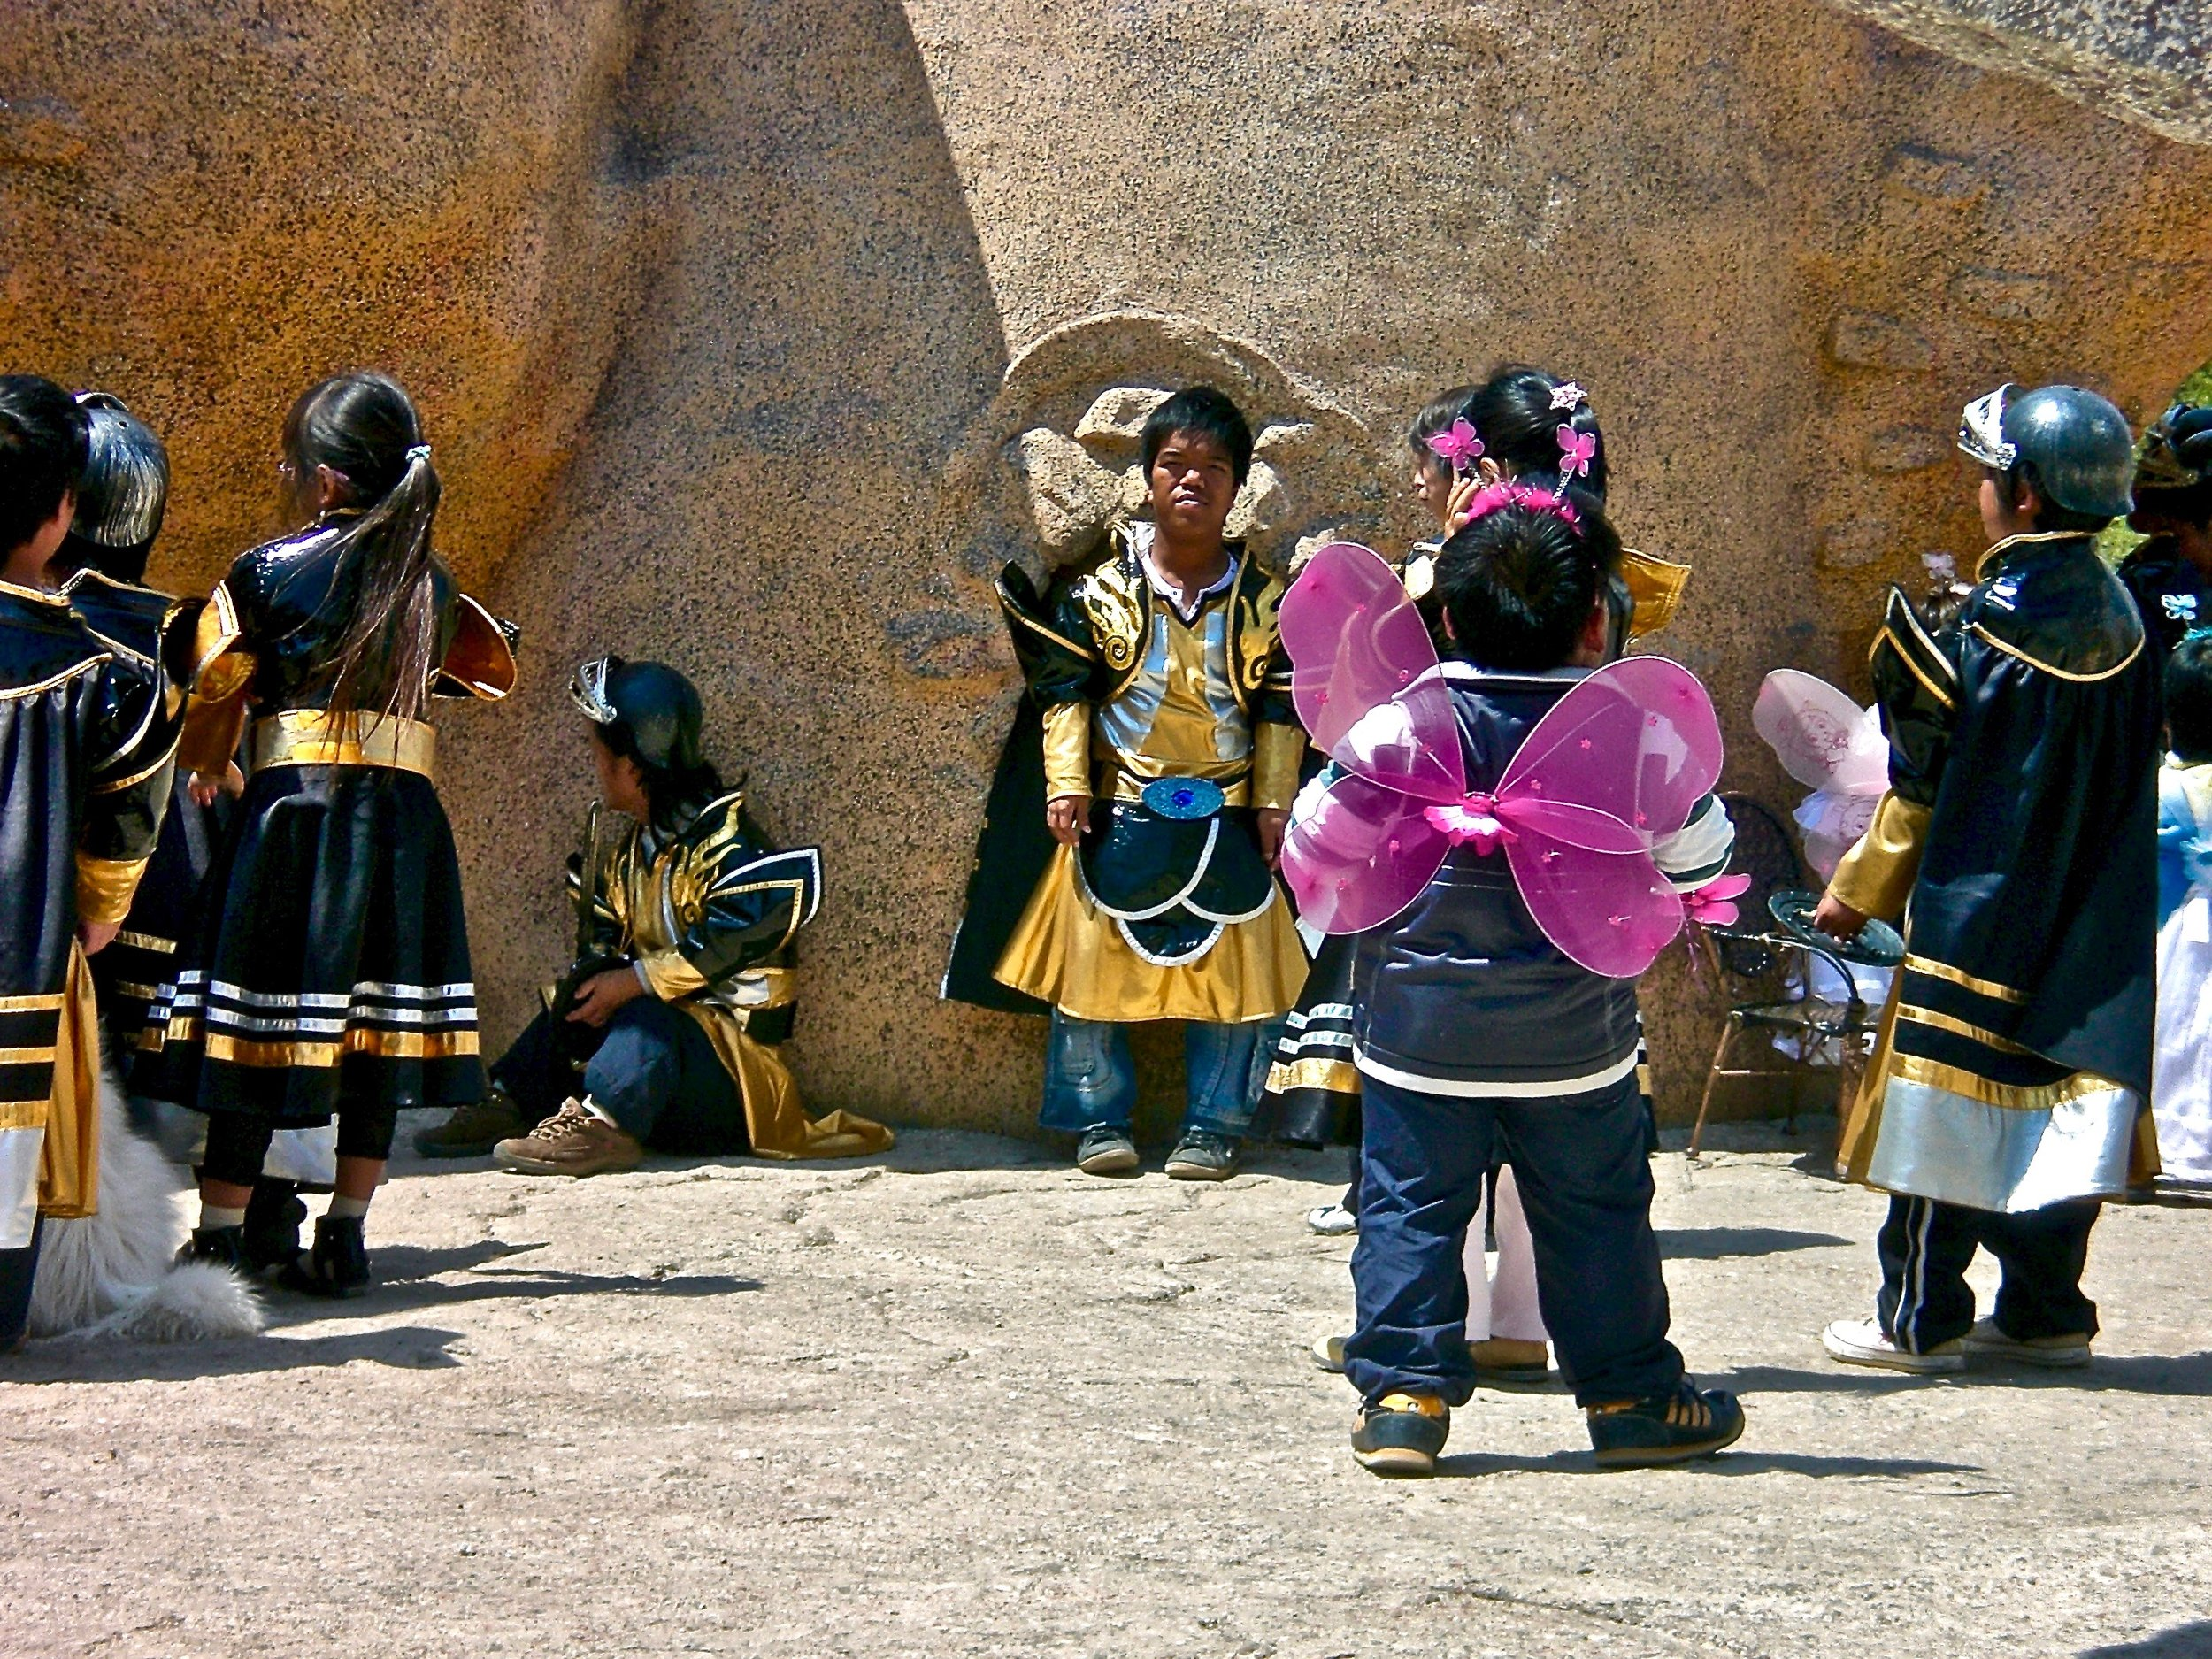 Performers backstage at the Kingdom of the Dwarfs amusement park in Yunnan, China. (C) Remko Tanis